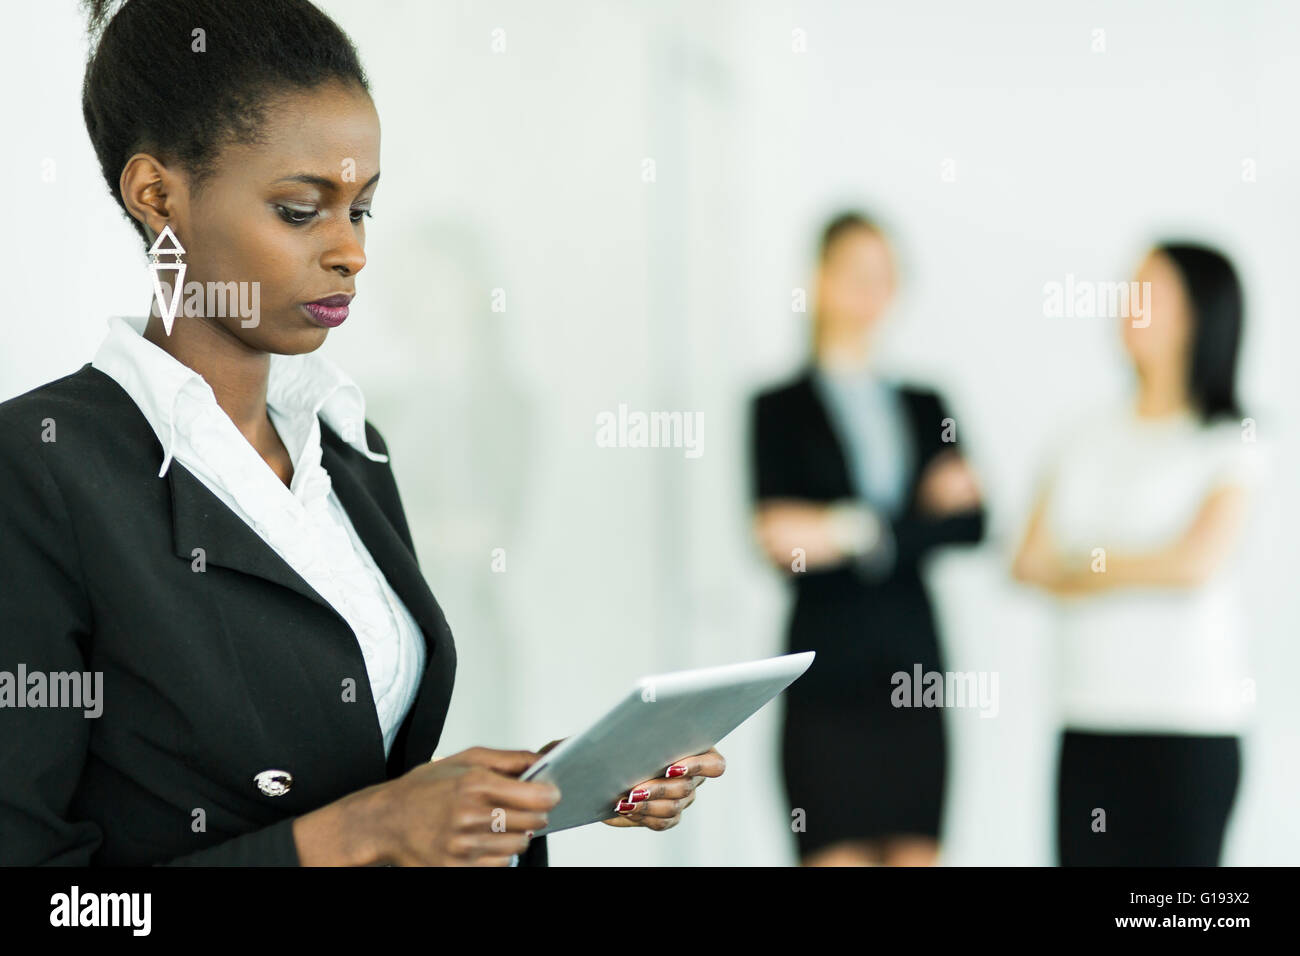 Businesswoman holding a tablet and concentrating on the contents with two colleagues blurred out in the background - Stock Image